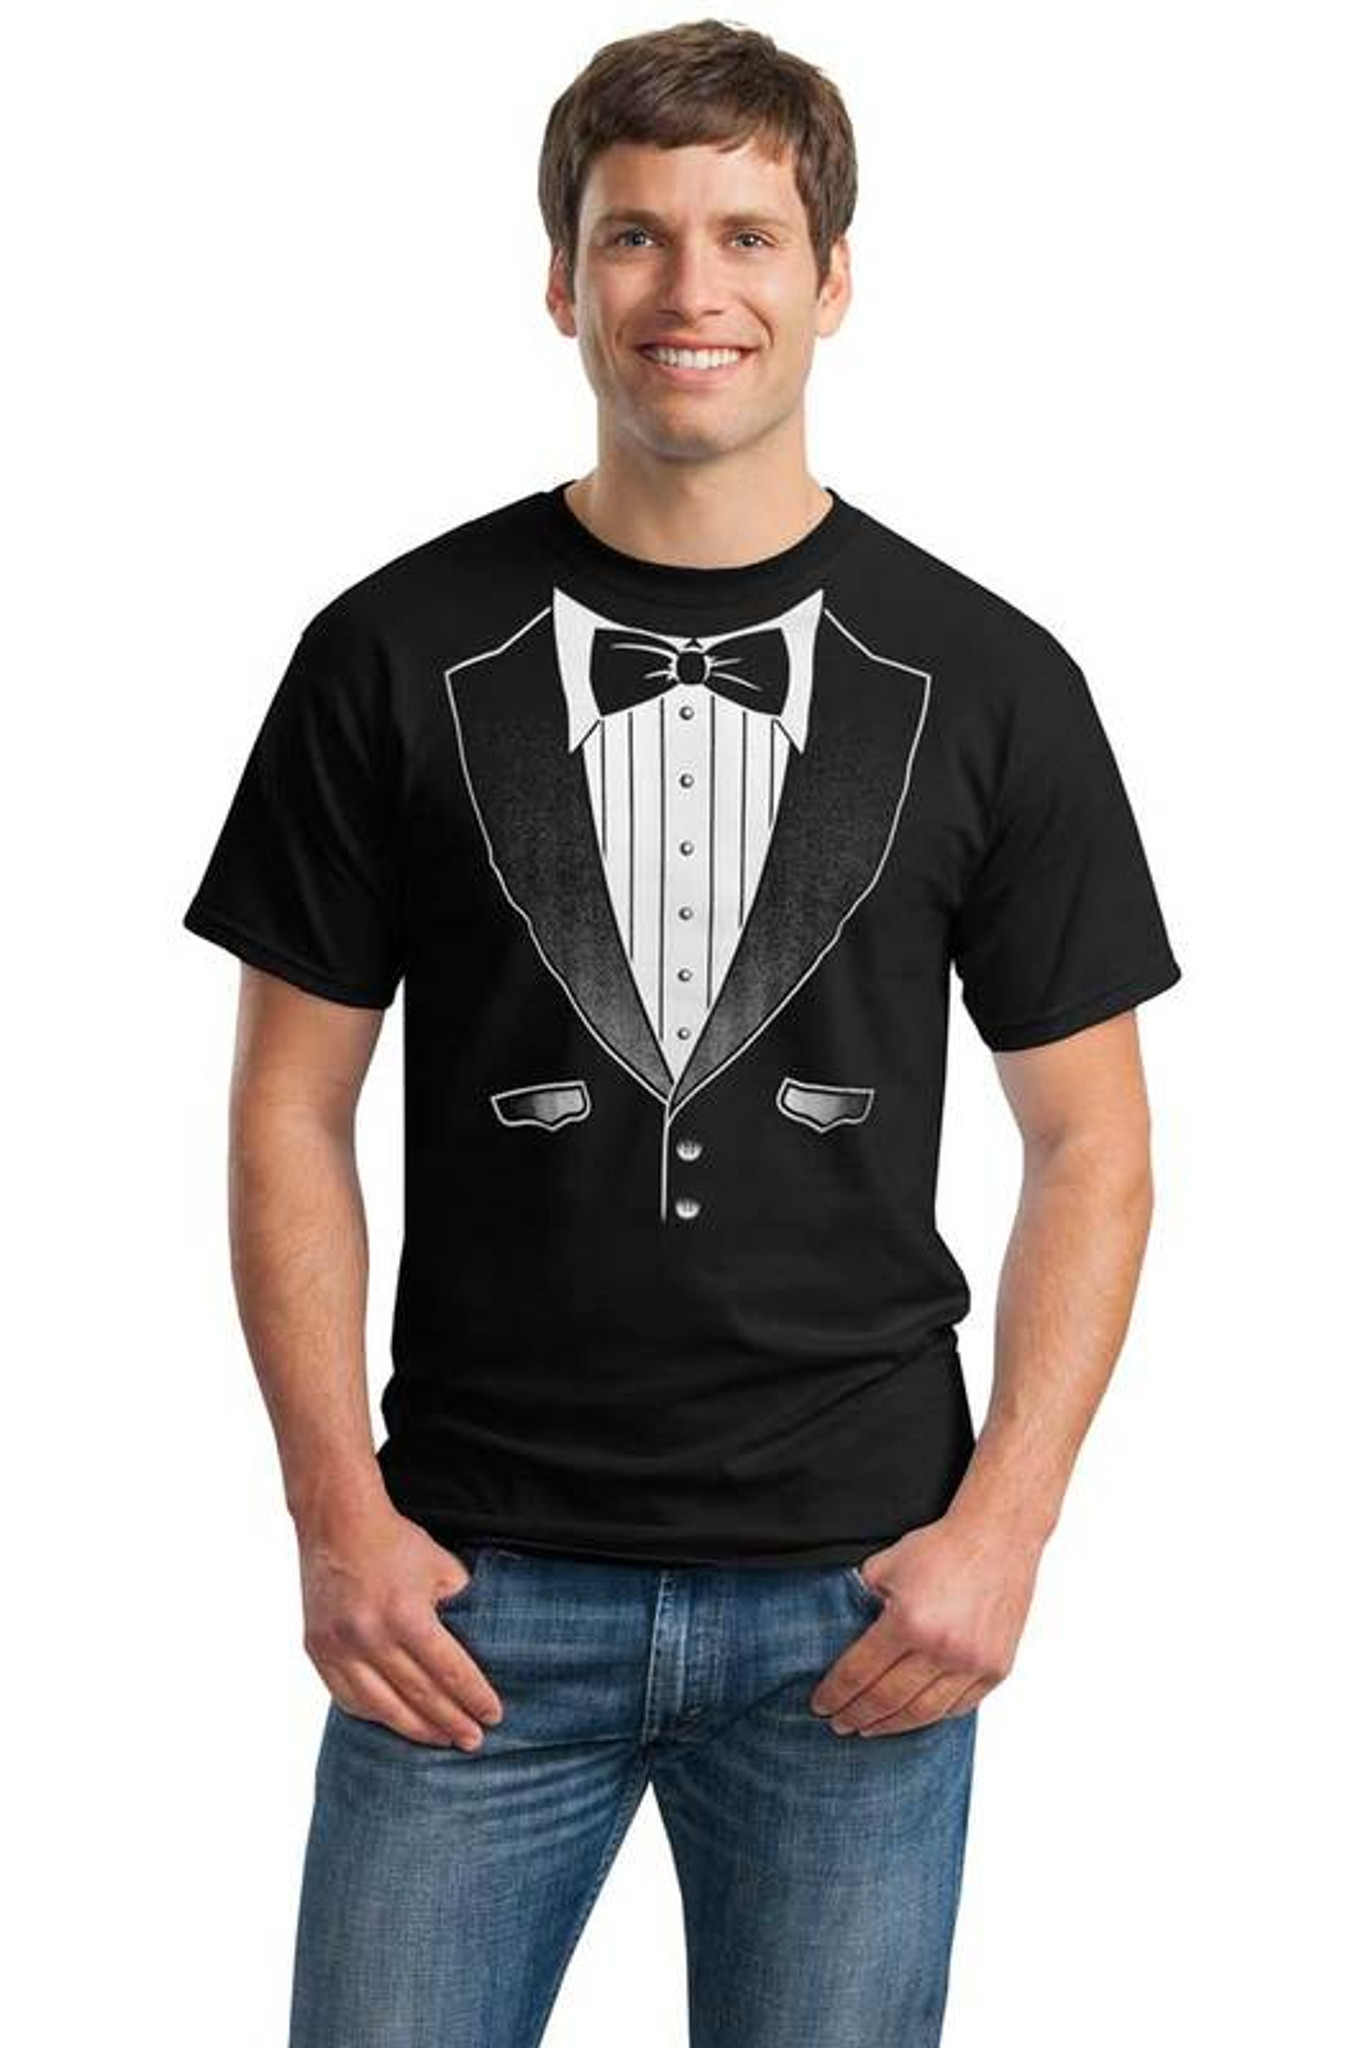 The Original Tuxedo T-Shirt is Never Out of Style